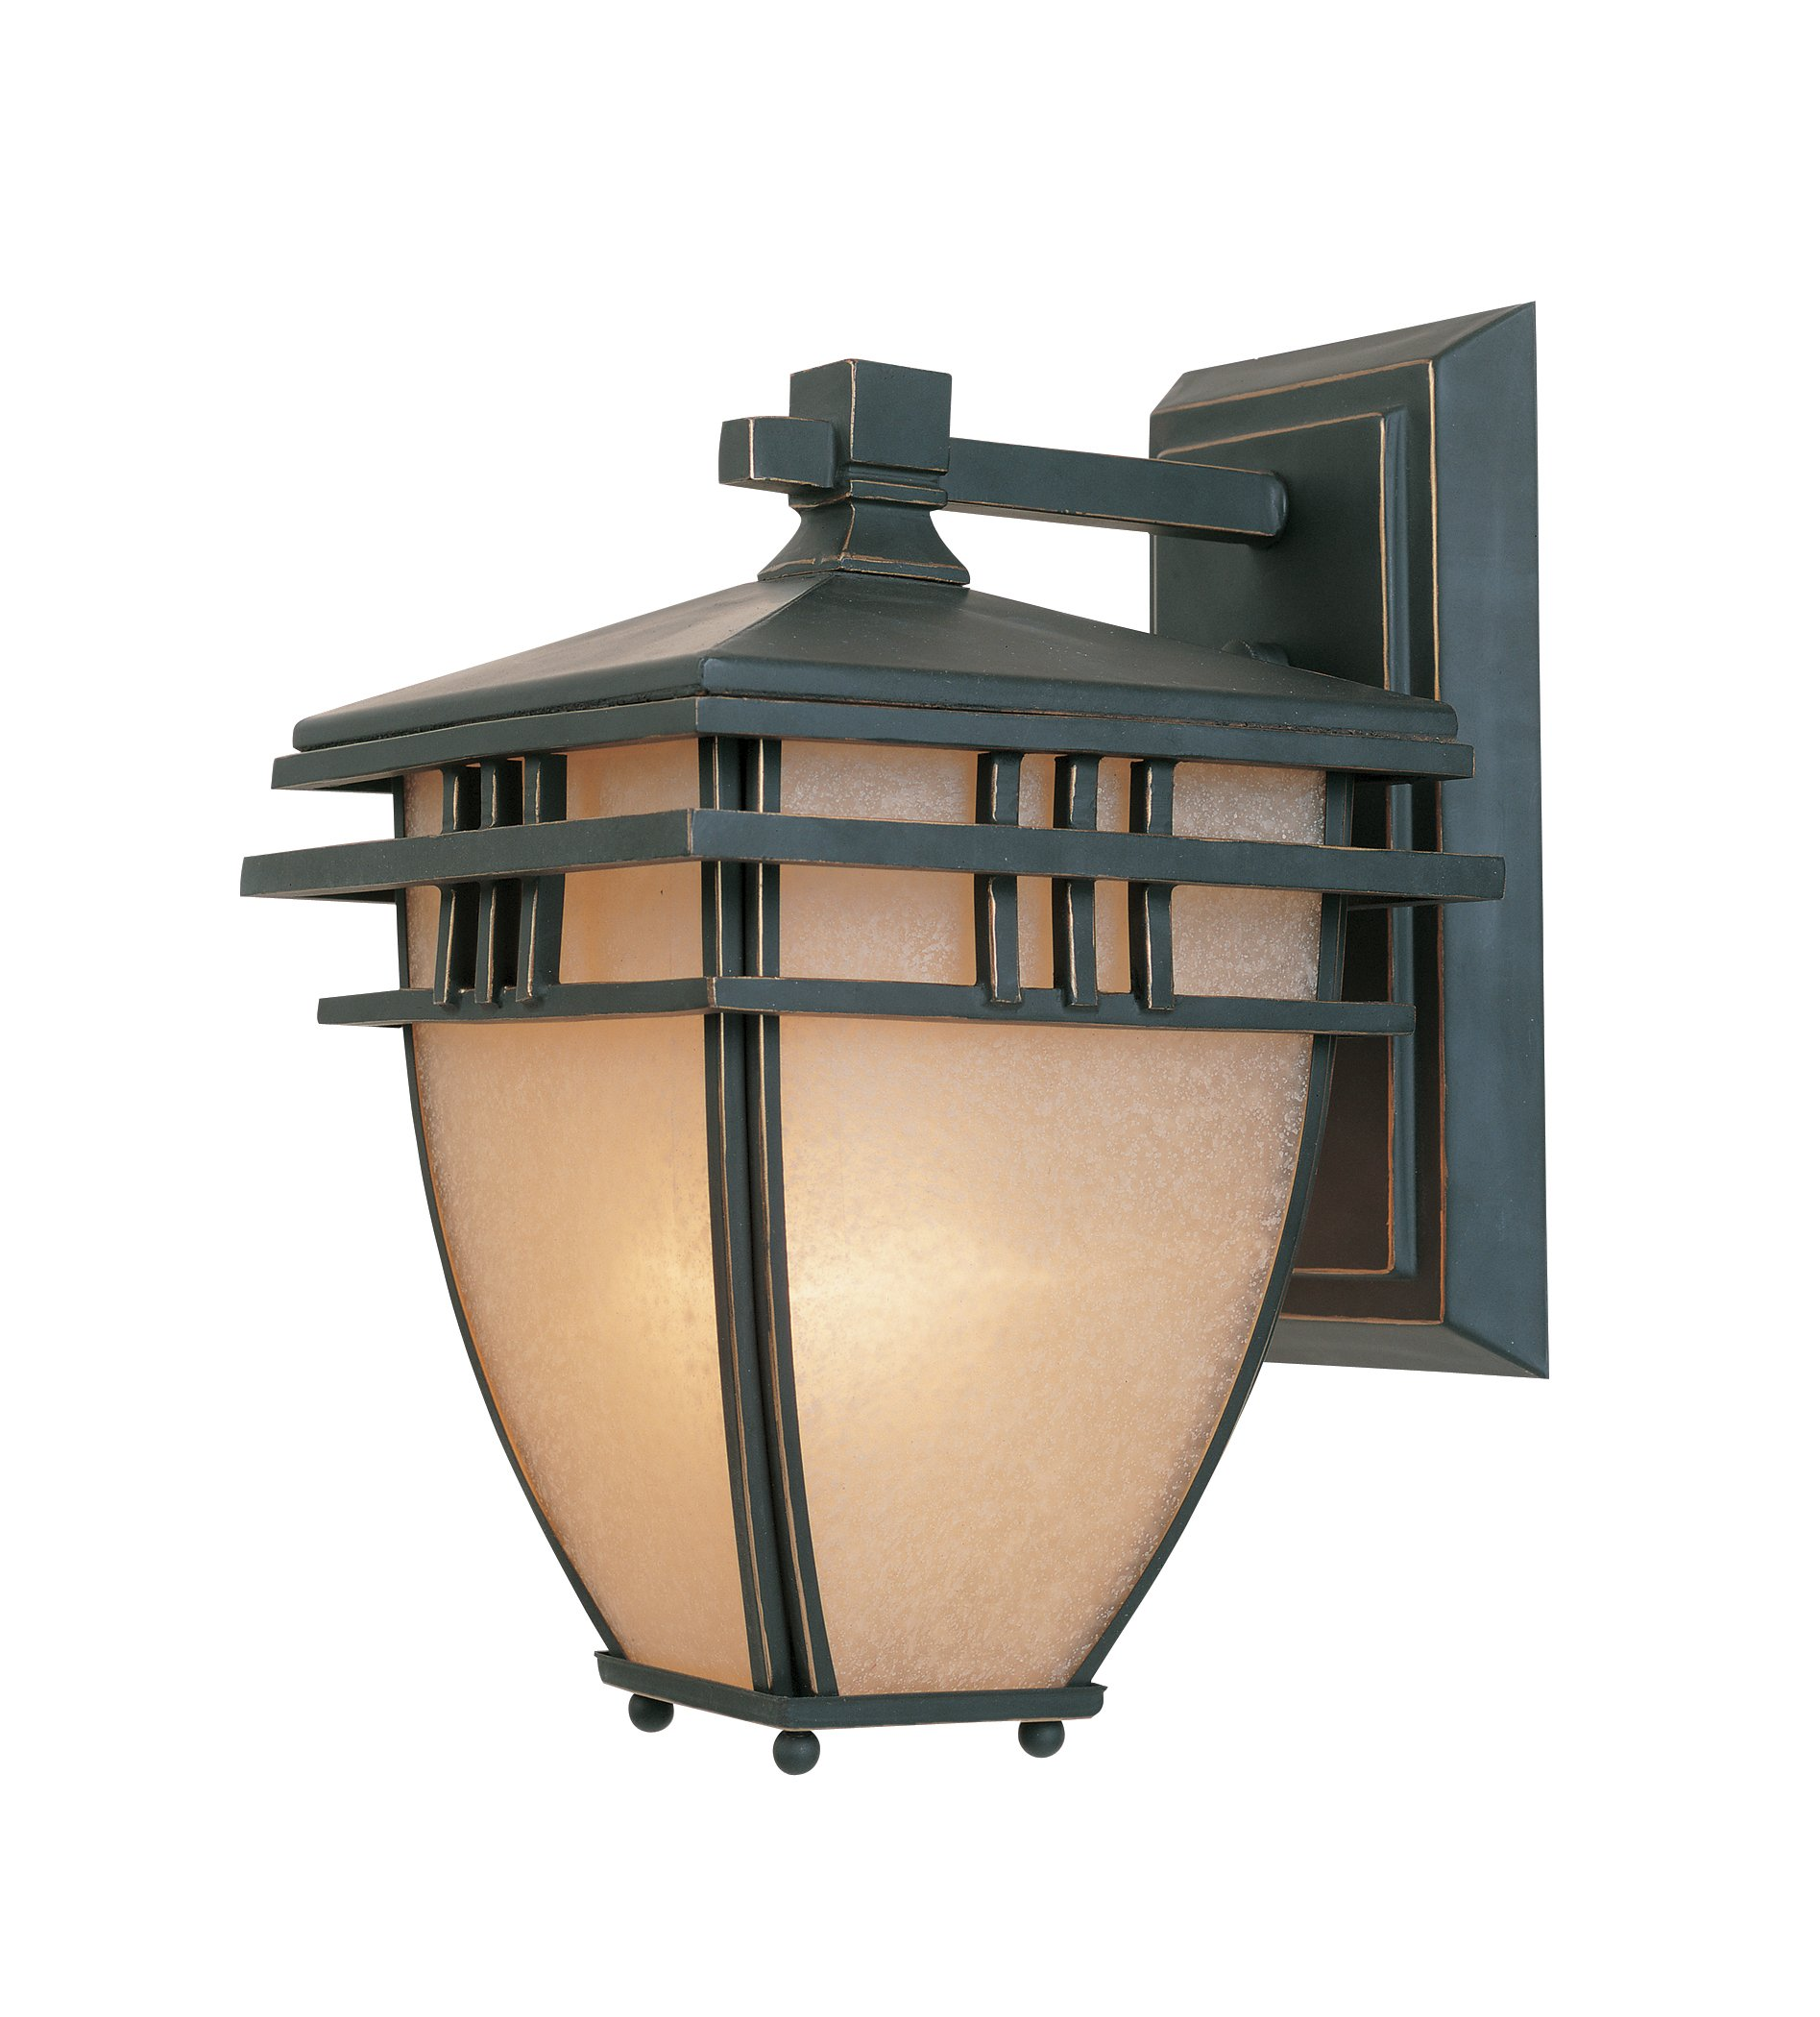 Designers Fountain 30821-ABP Dayton Wall Lanterns, Aged Bronze Patina